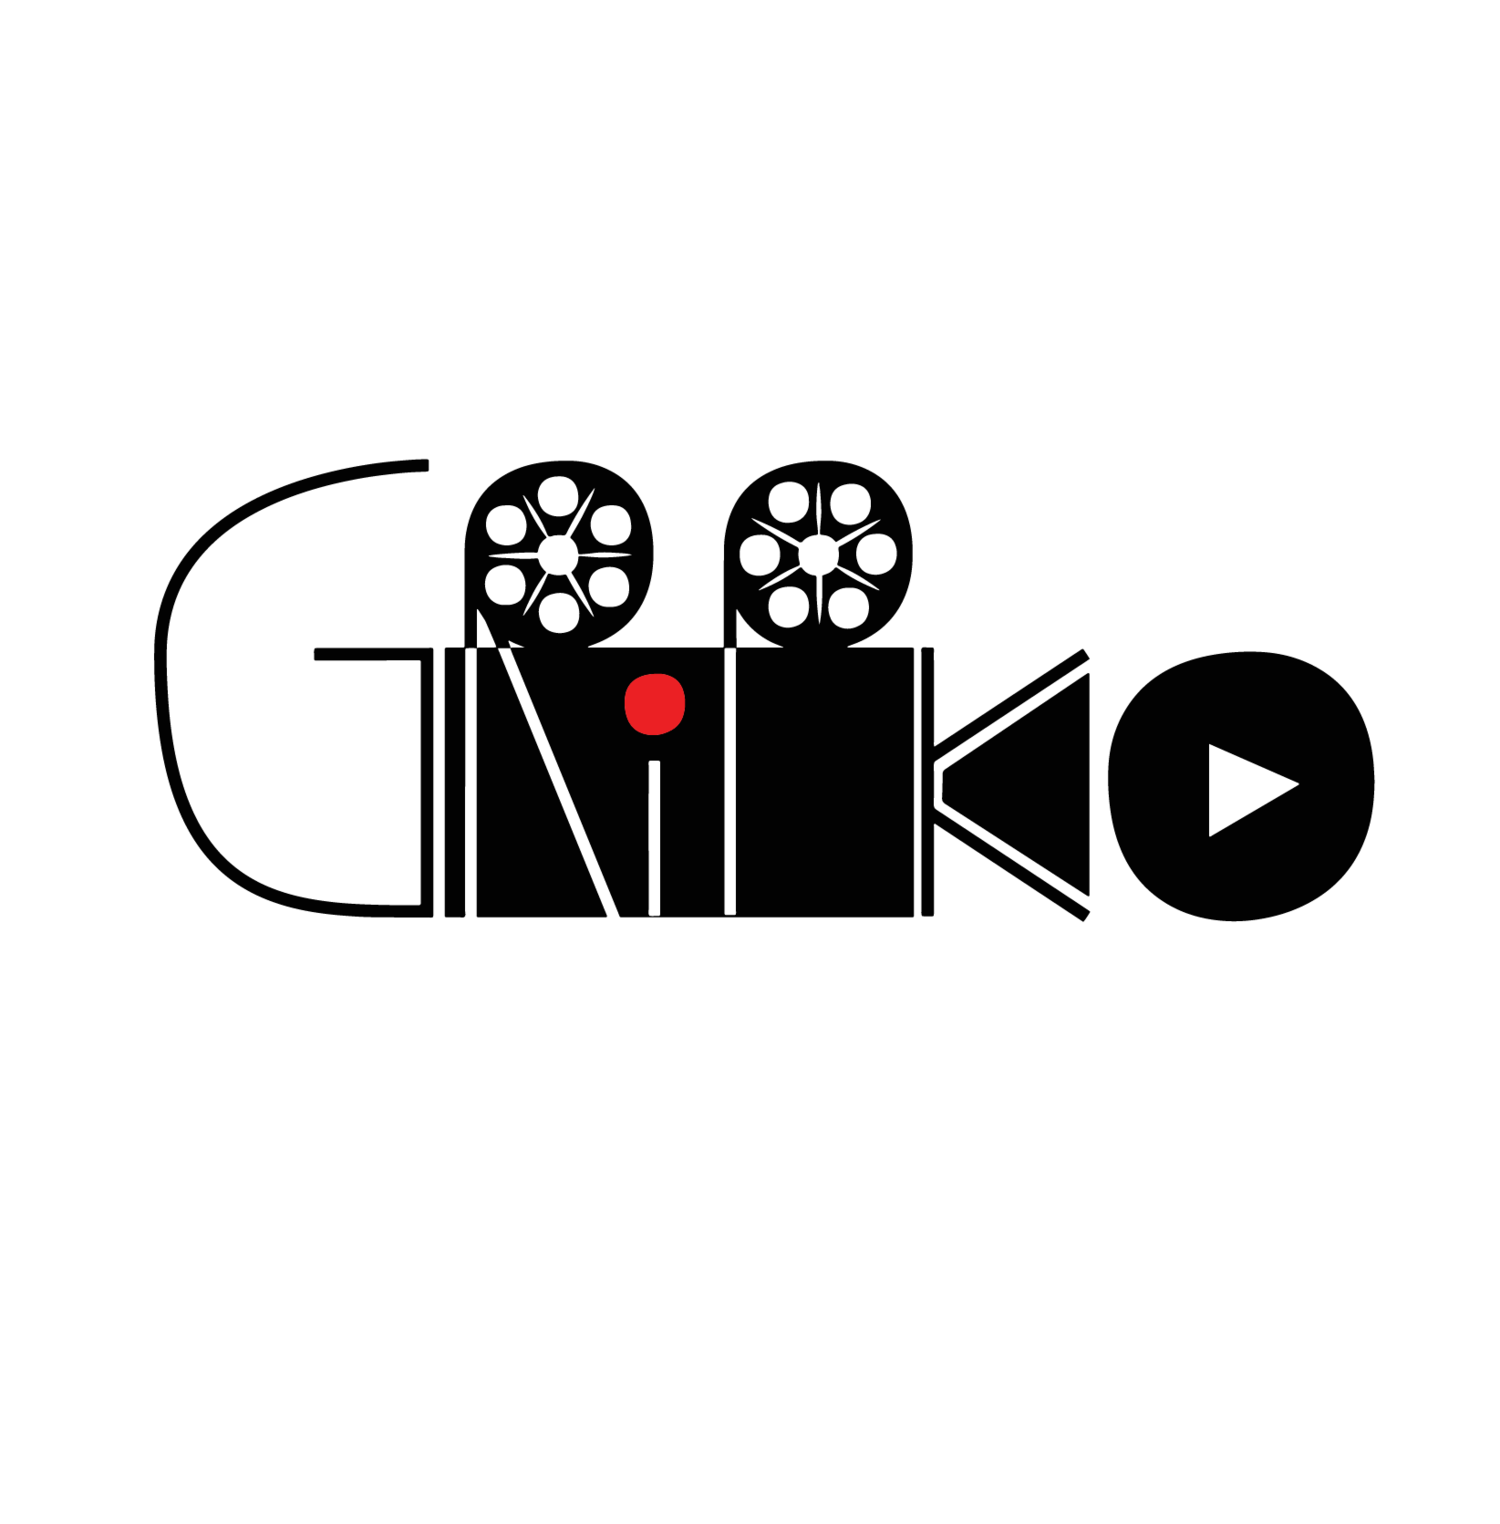 Gripko Productions